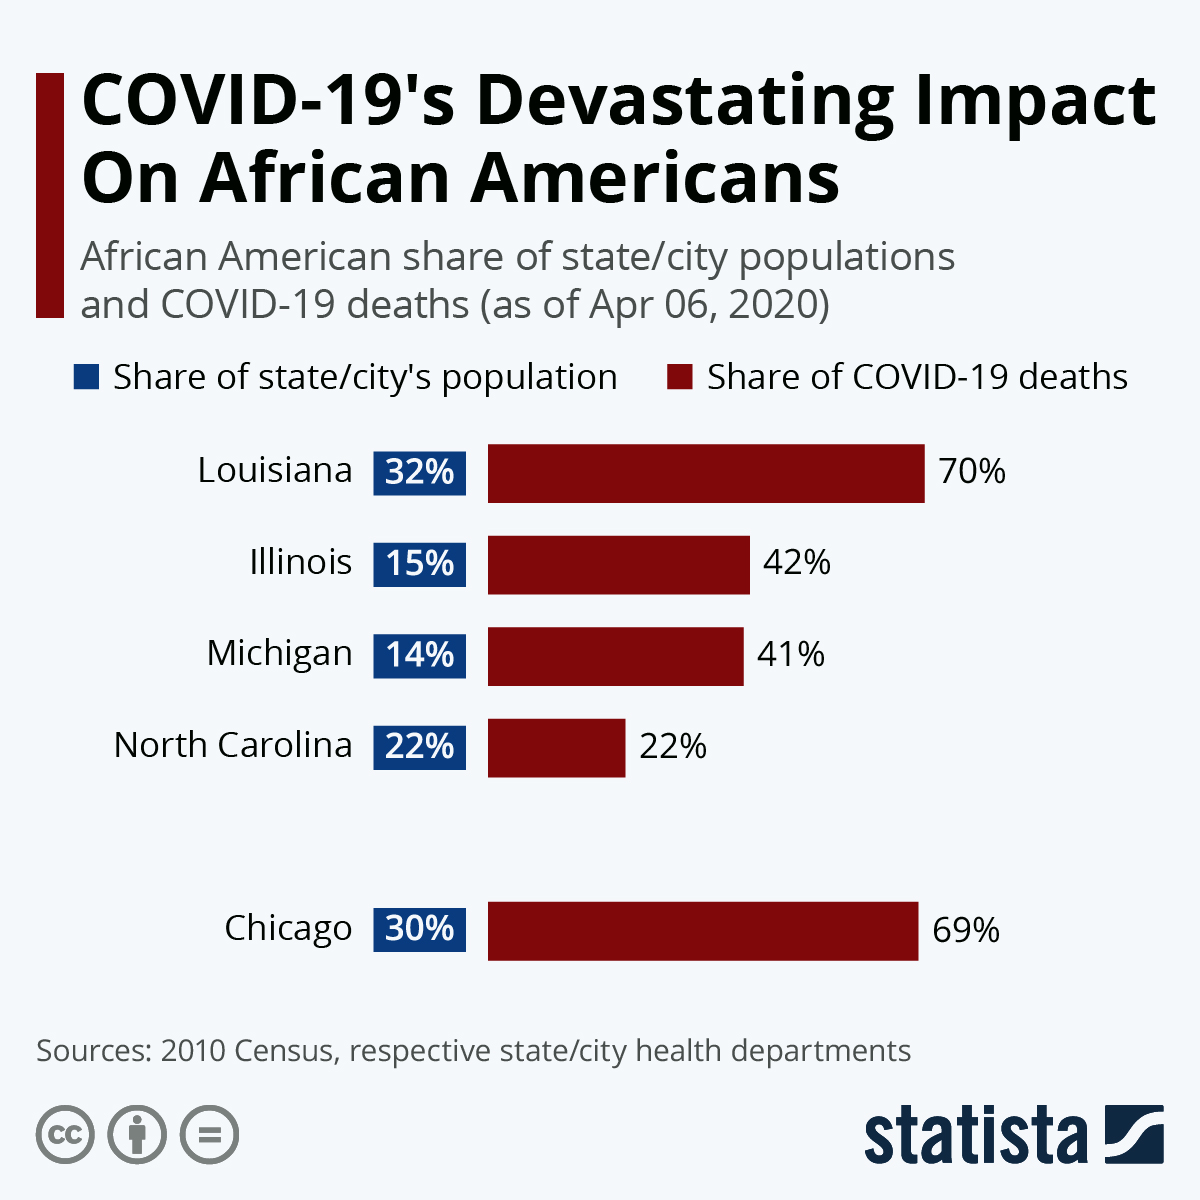 Covid 19's devastating impact on African Americans